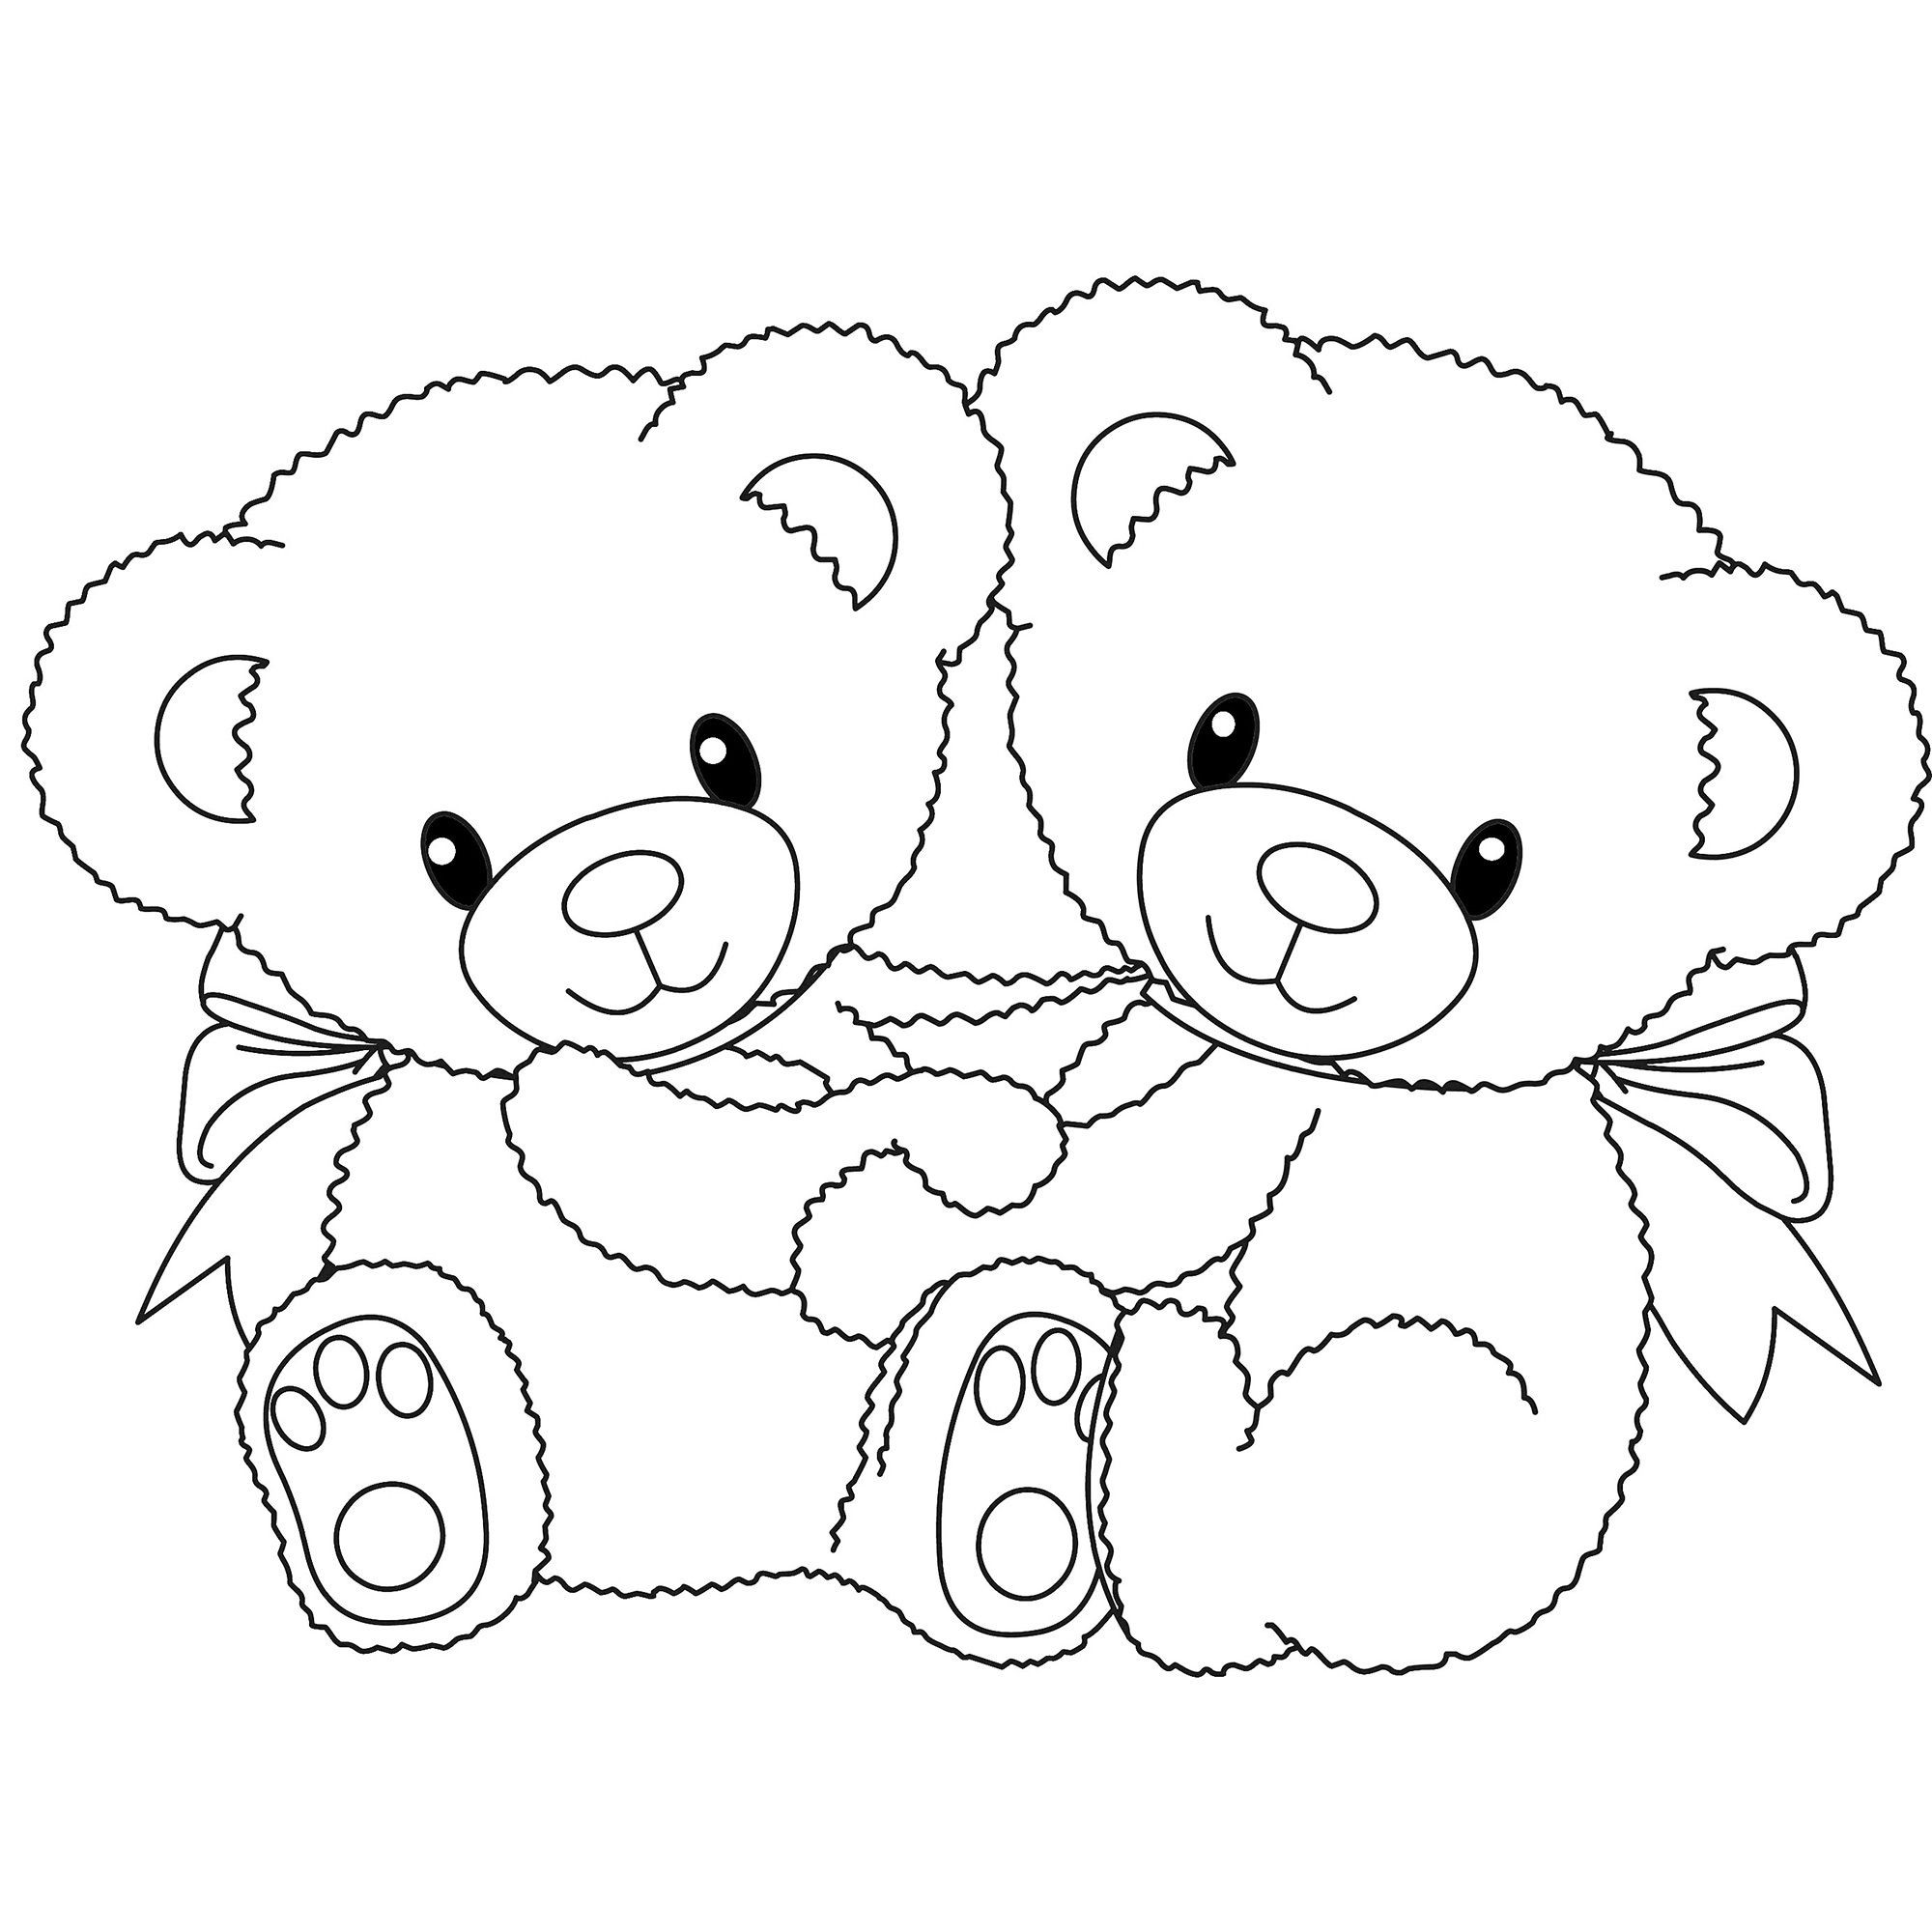 Teddy coloring pages free. Bear clip art printable png free library